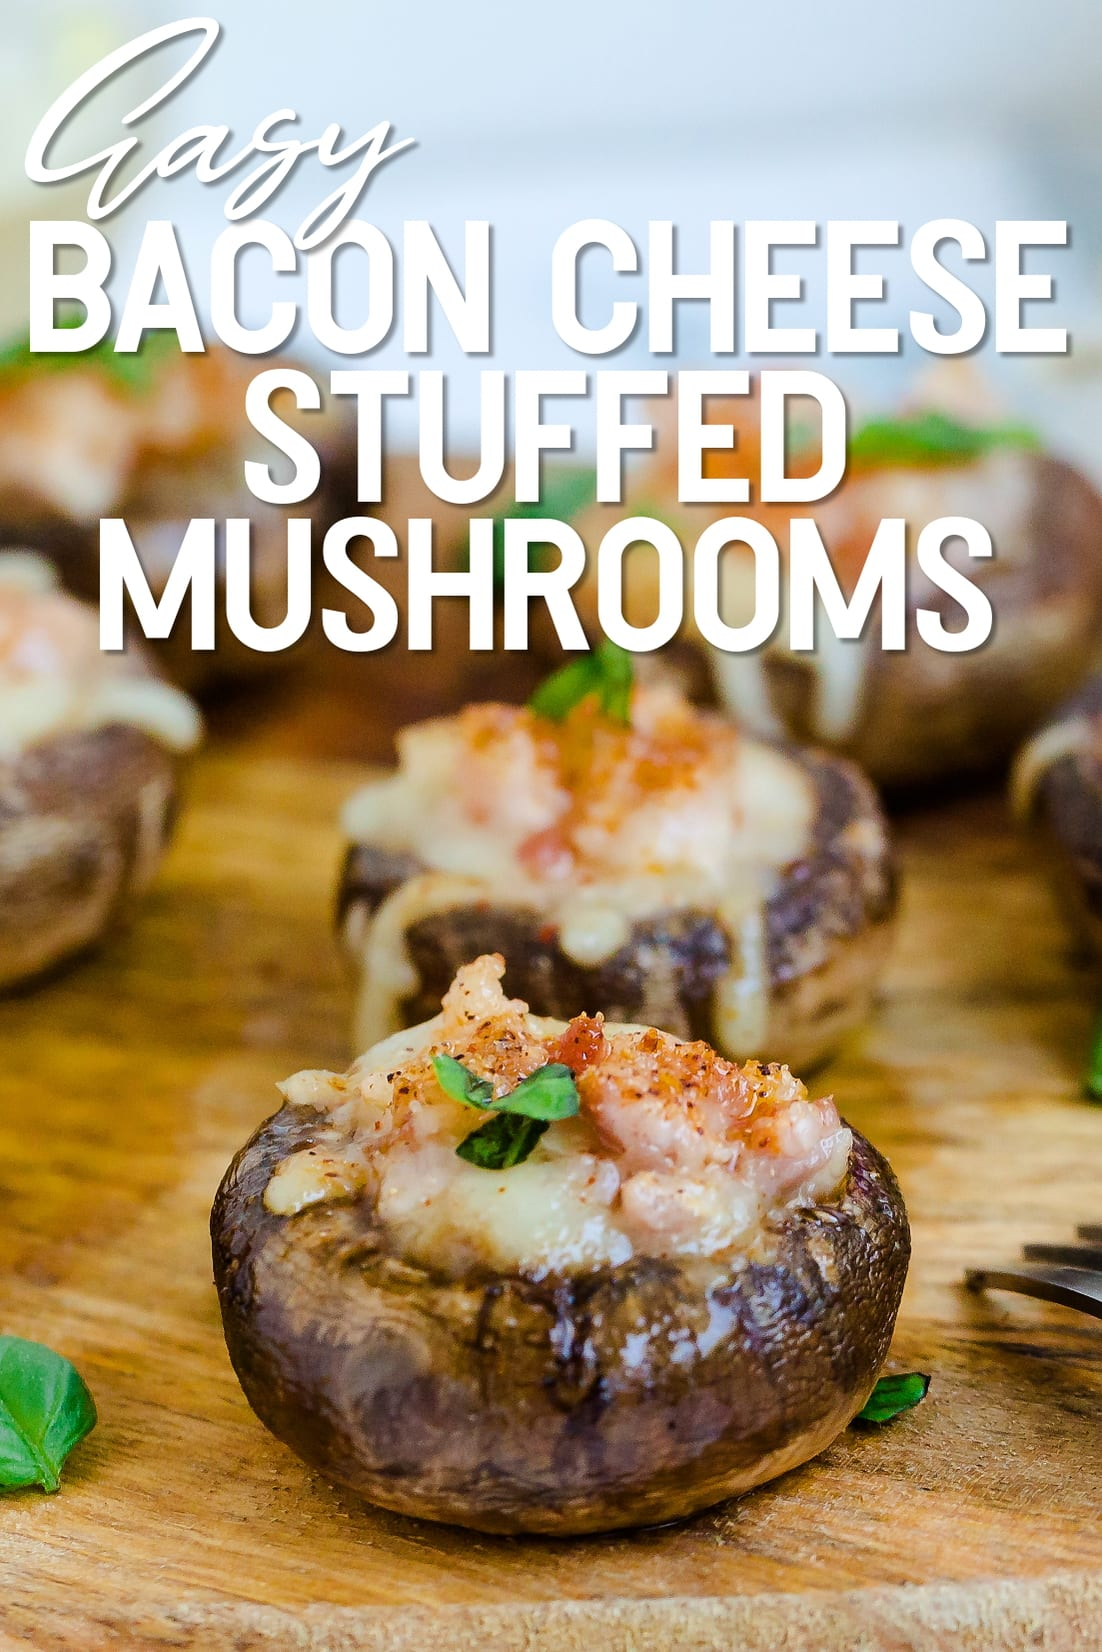 Bacon Cheese Stuffed Mushrooms served on a wooden plank